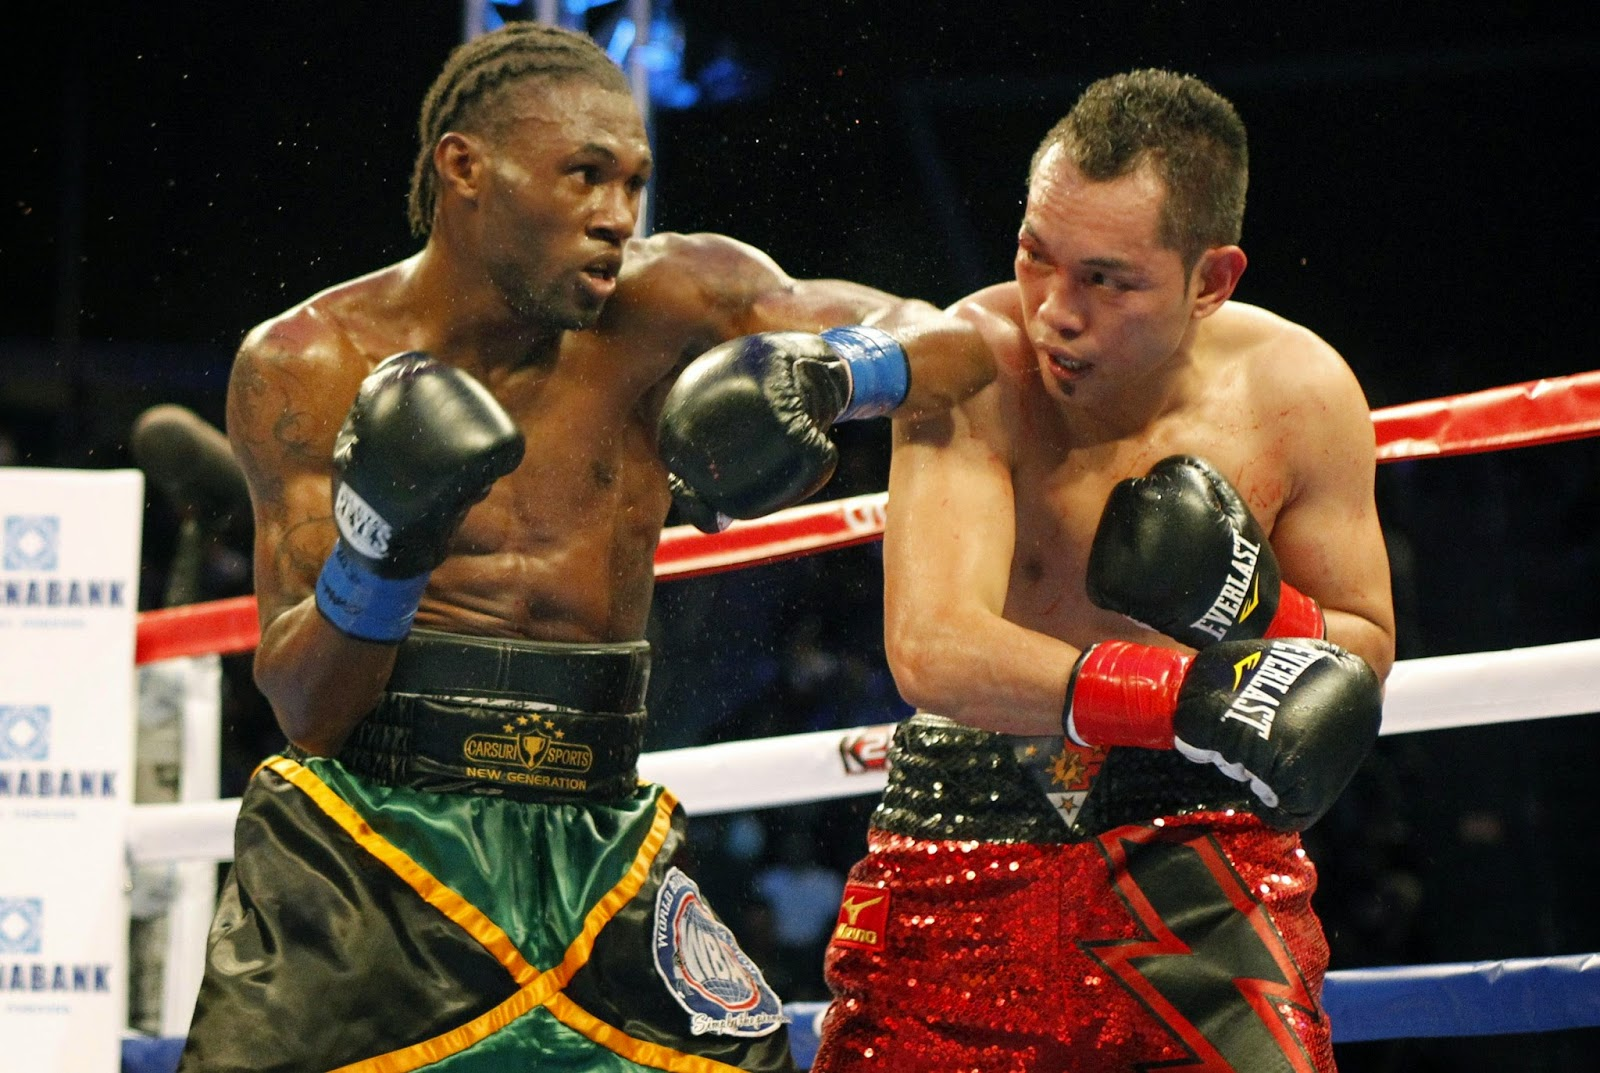 Donaire KO, Donaire Knocked out, Walters vs Donaire